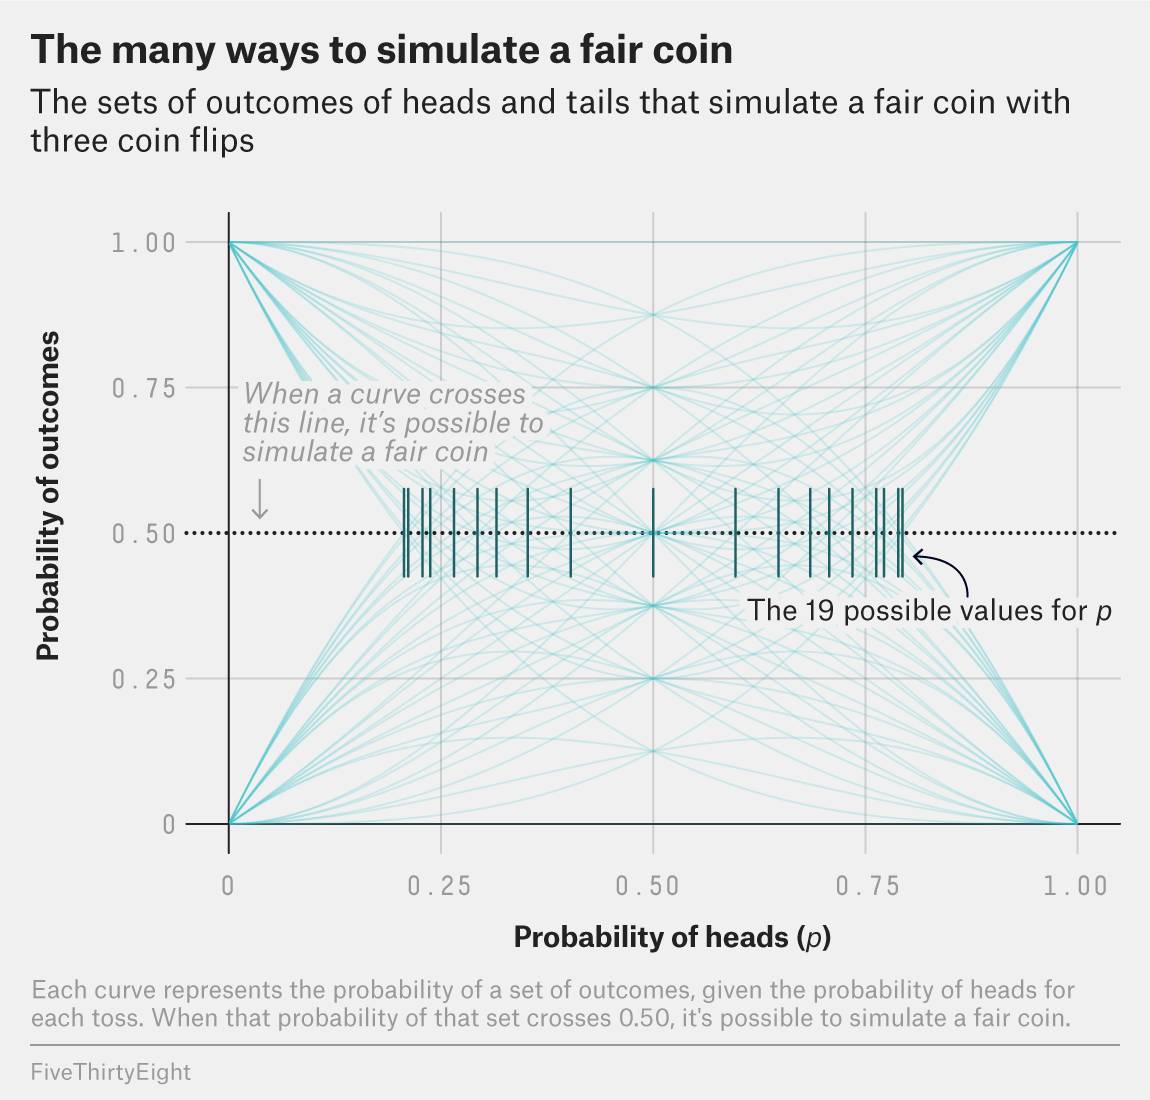 The sets of outcomes of heads and tails that simulate a fair coin with three coin flips. Each of the 64 polynomial curves represents a set of outcomes. Where each curve crosses 0.50 is where it's possible to simulate a fair coin.